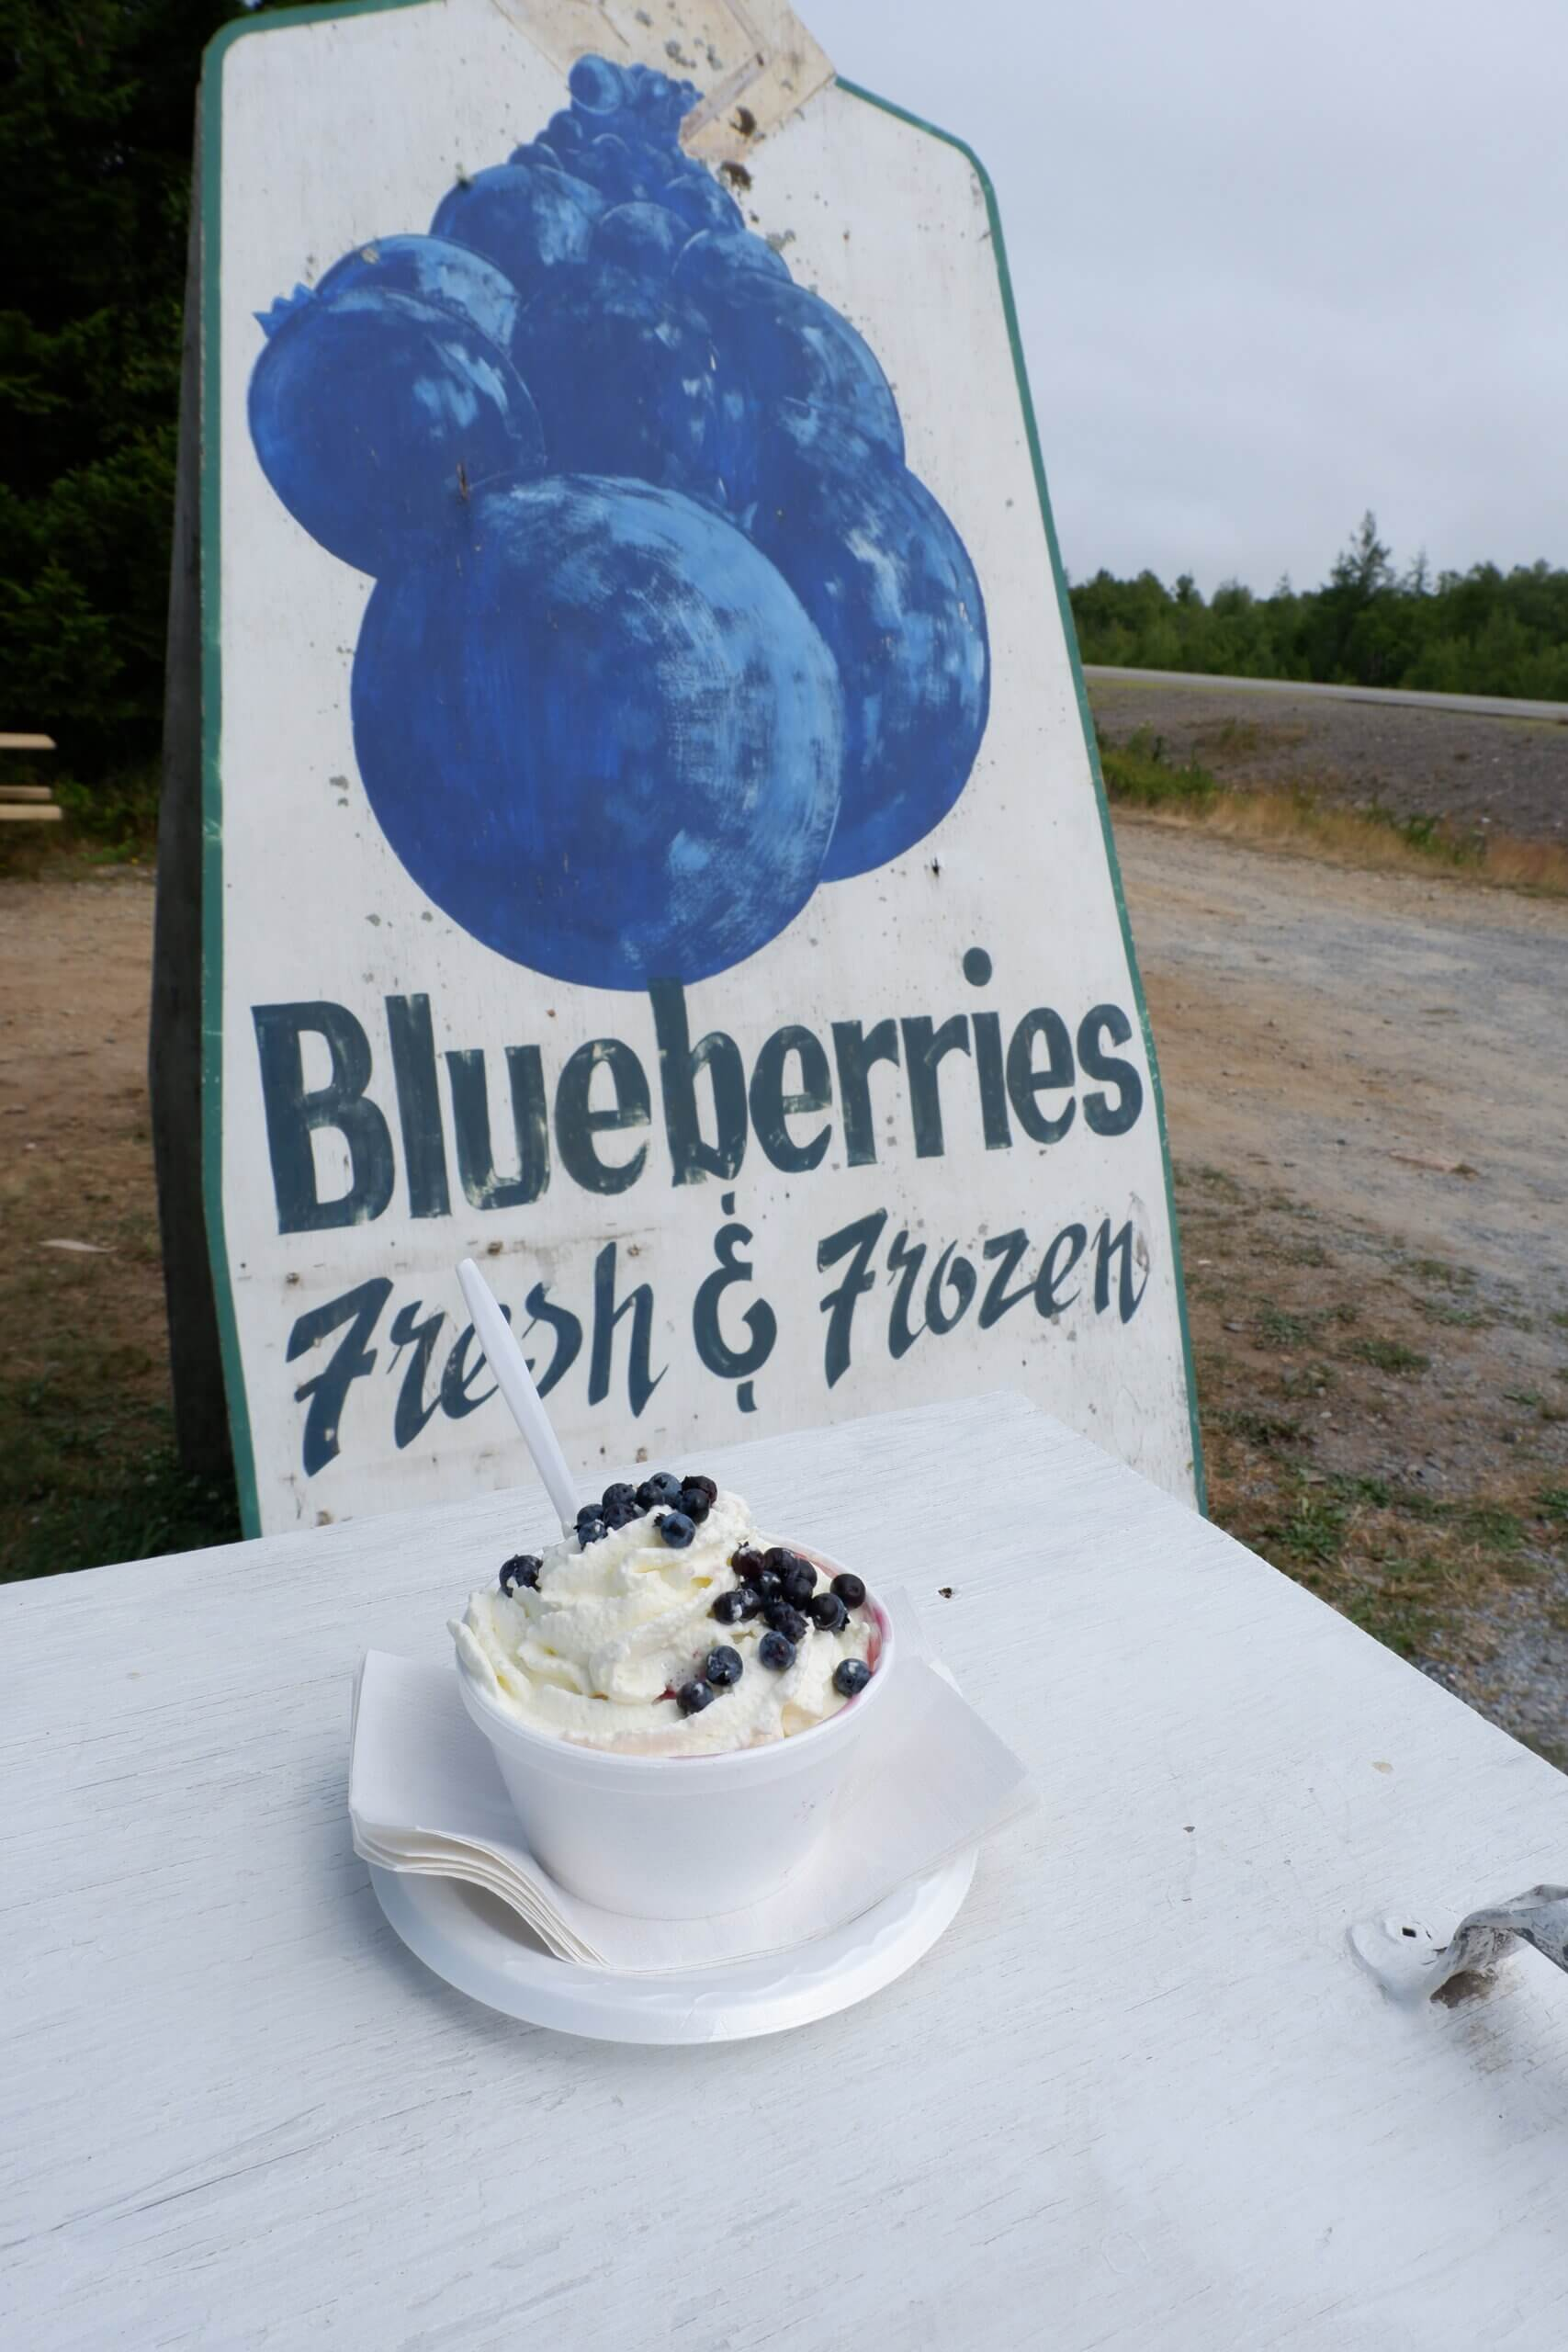 blueberries and whipped cream on a biscuit in front of the mackays wild blueberry sign in pennfield new brunswick